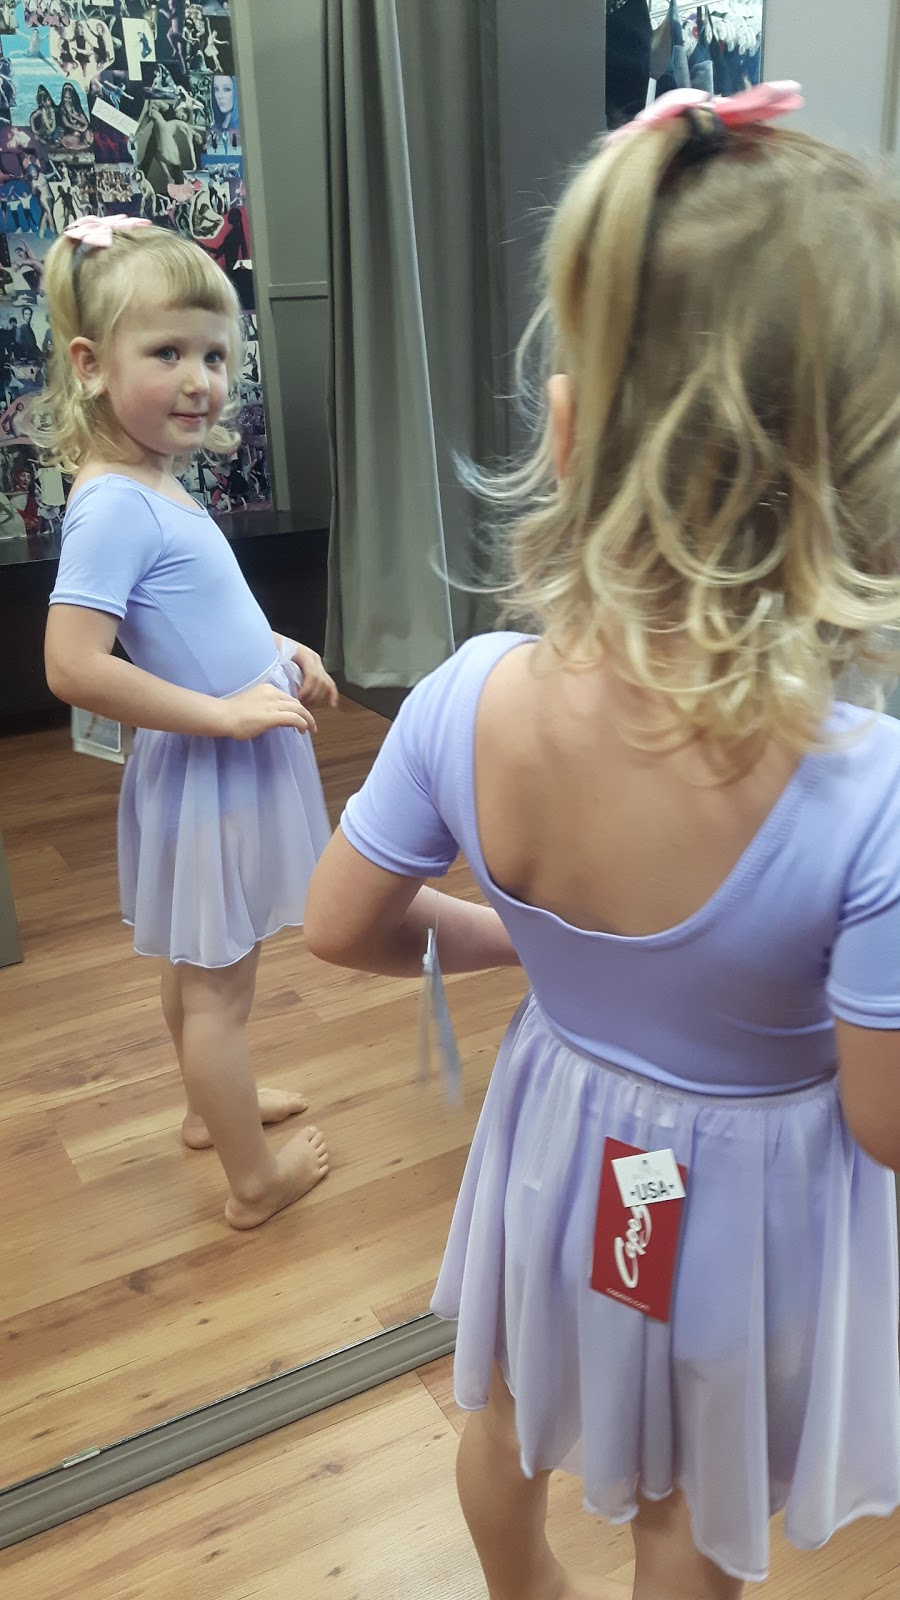 Toes N Taps Dance Shoppe | store | 1733 Cook St, Victoria, BC V8T 1C7, Canada | 2504800017 OR +1 250-480-0017